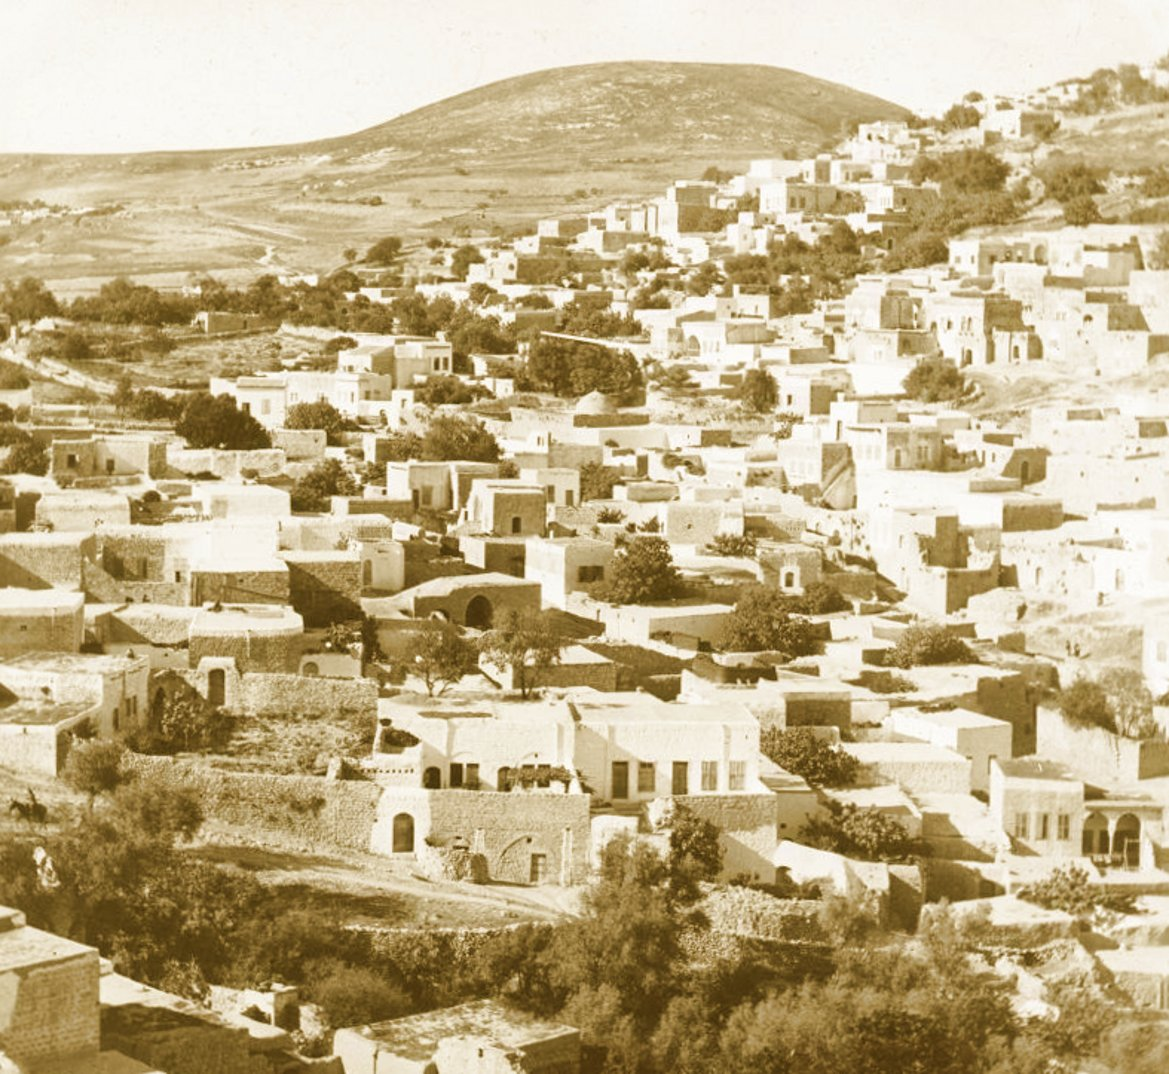 Safad - صفد : SAFAD - Late 19th, early 20th c. 7